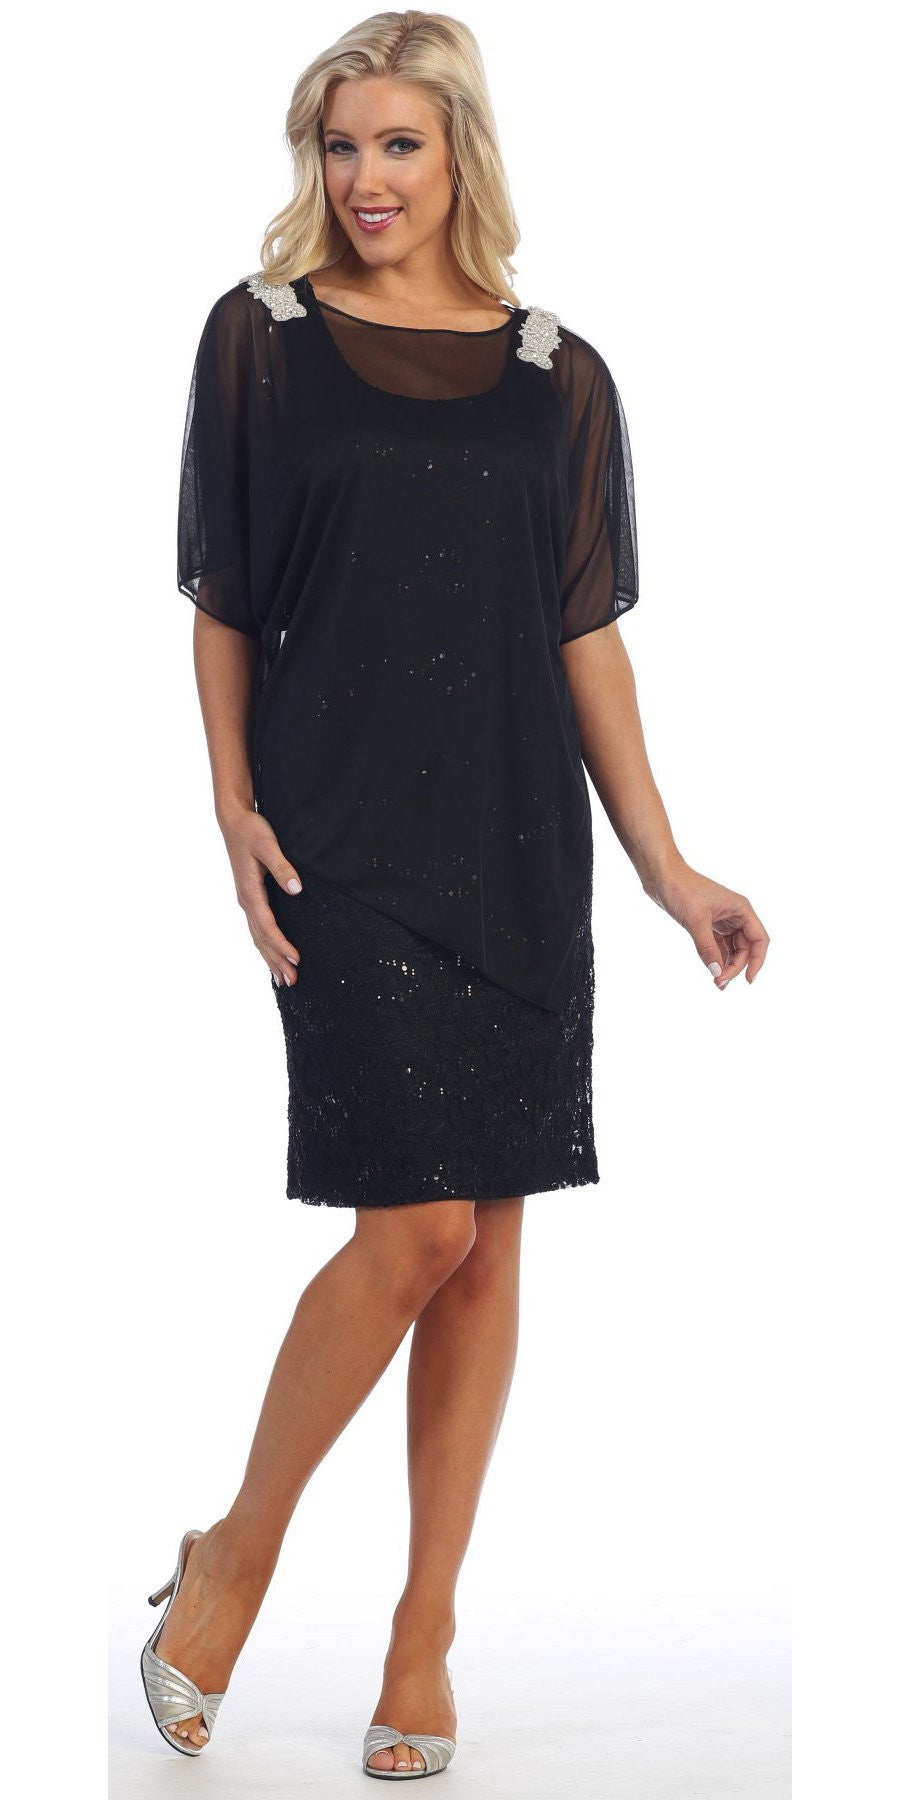 Sheer Batwing Sleeved Lace Black Sheath Cocktail Dress